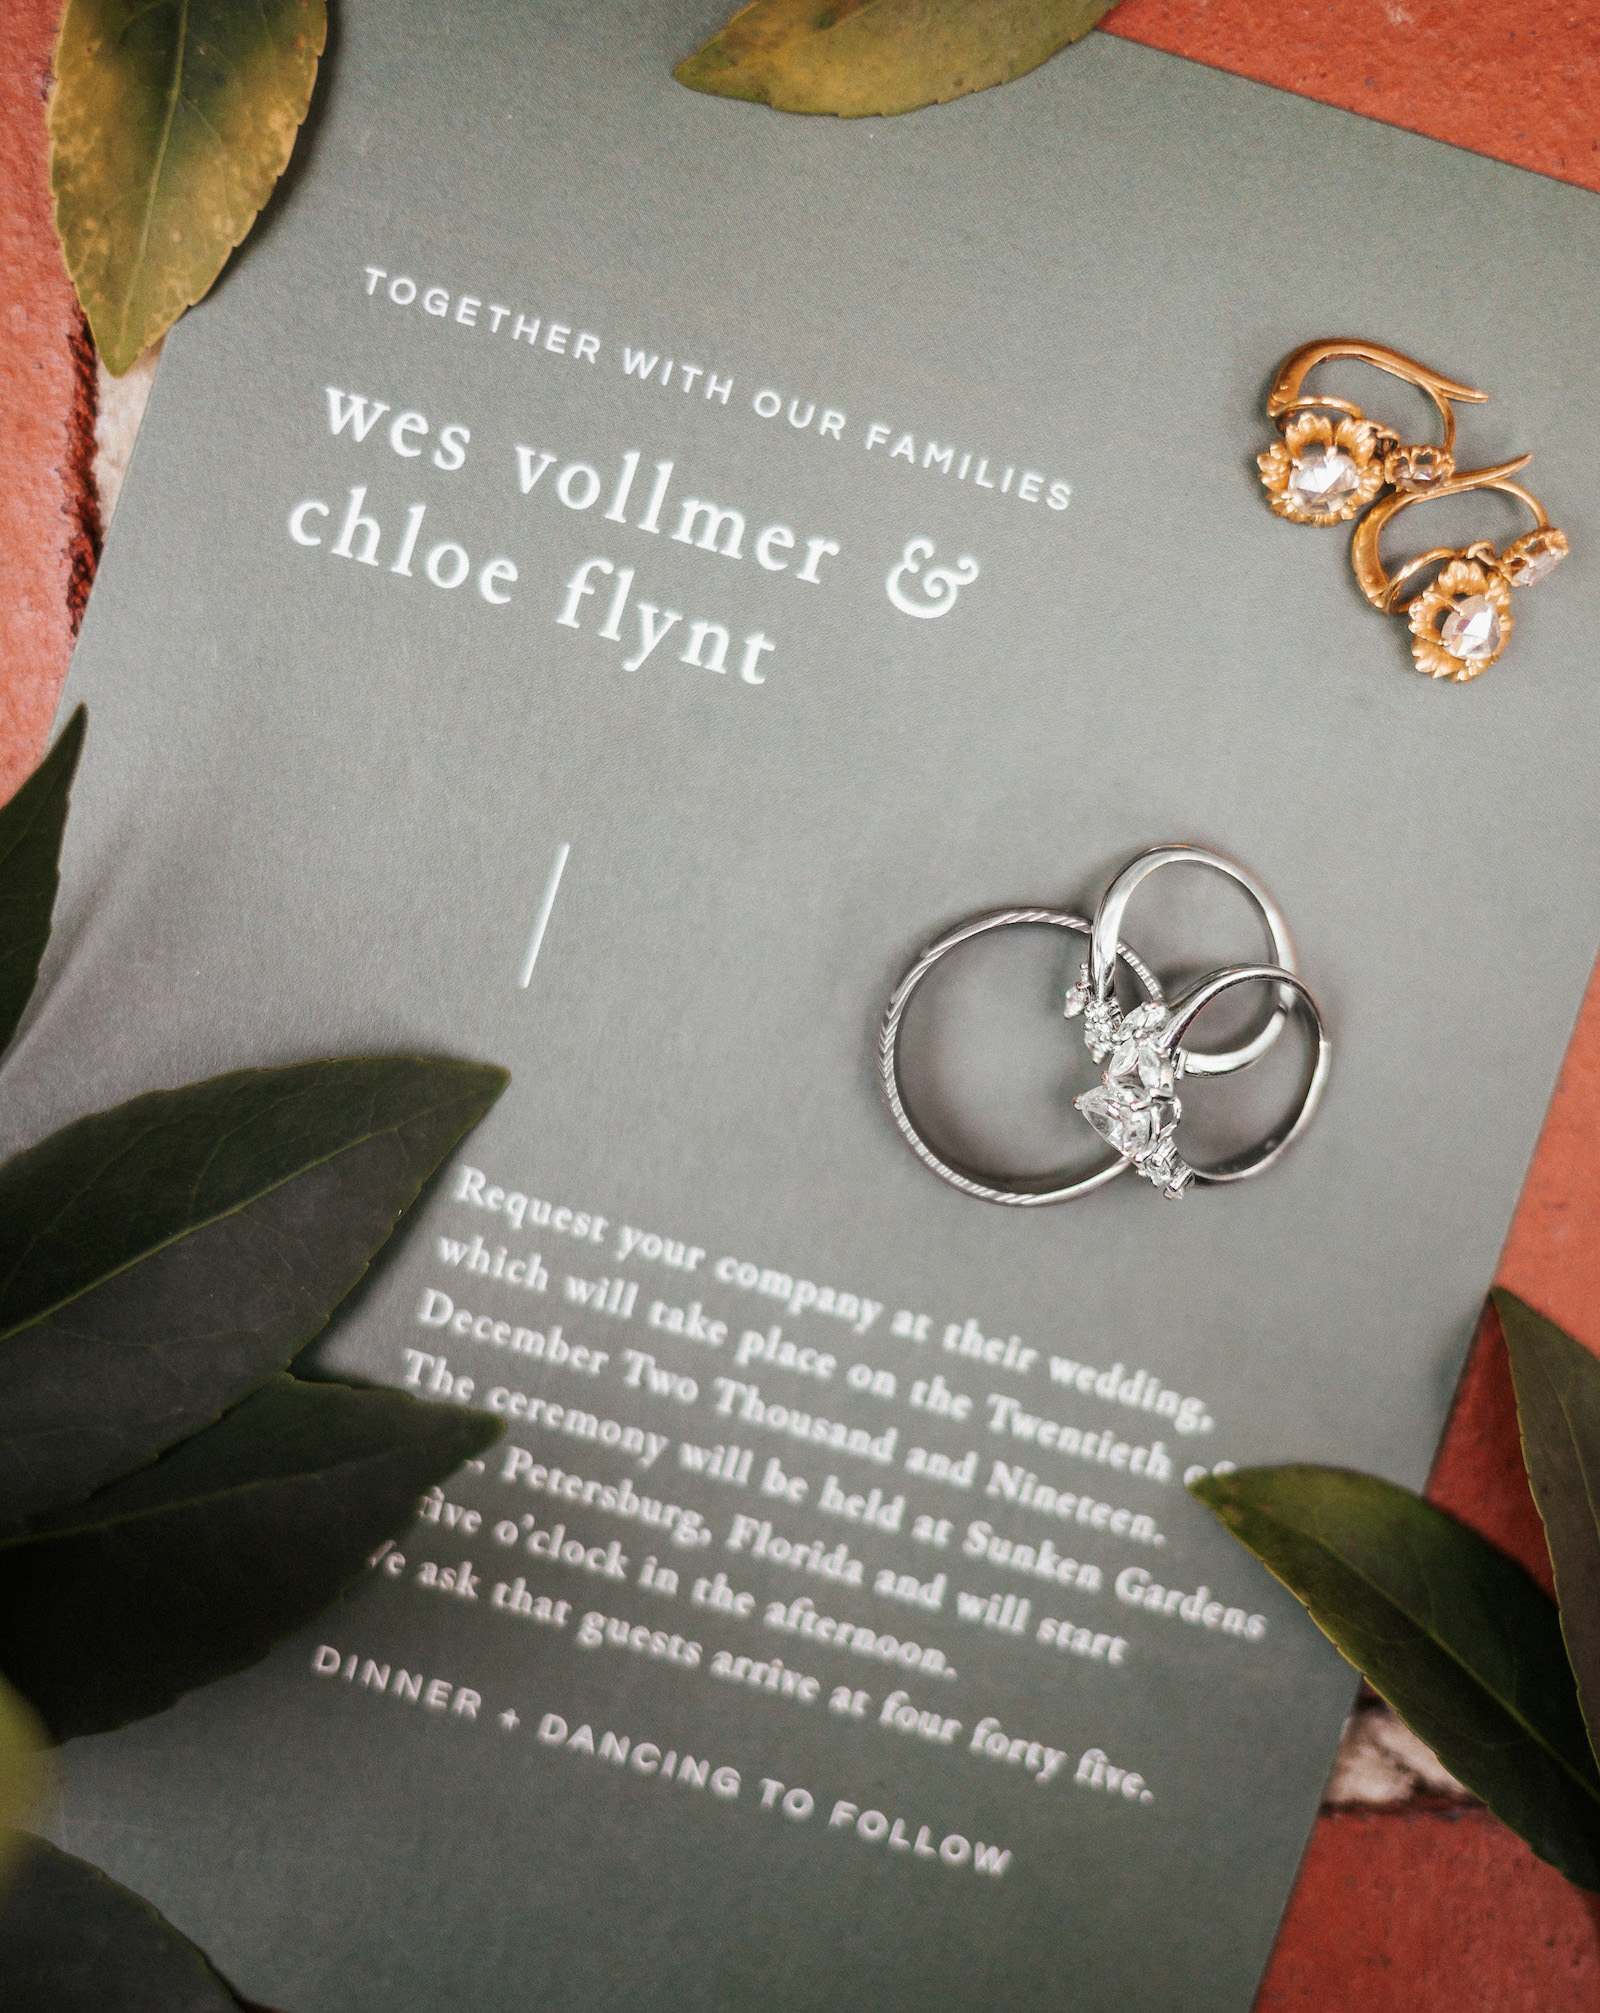 Modern Tropical Florida Wedding Invitation, Monochrome Gray Invitation with Silver Lettering, Engagement Rings